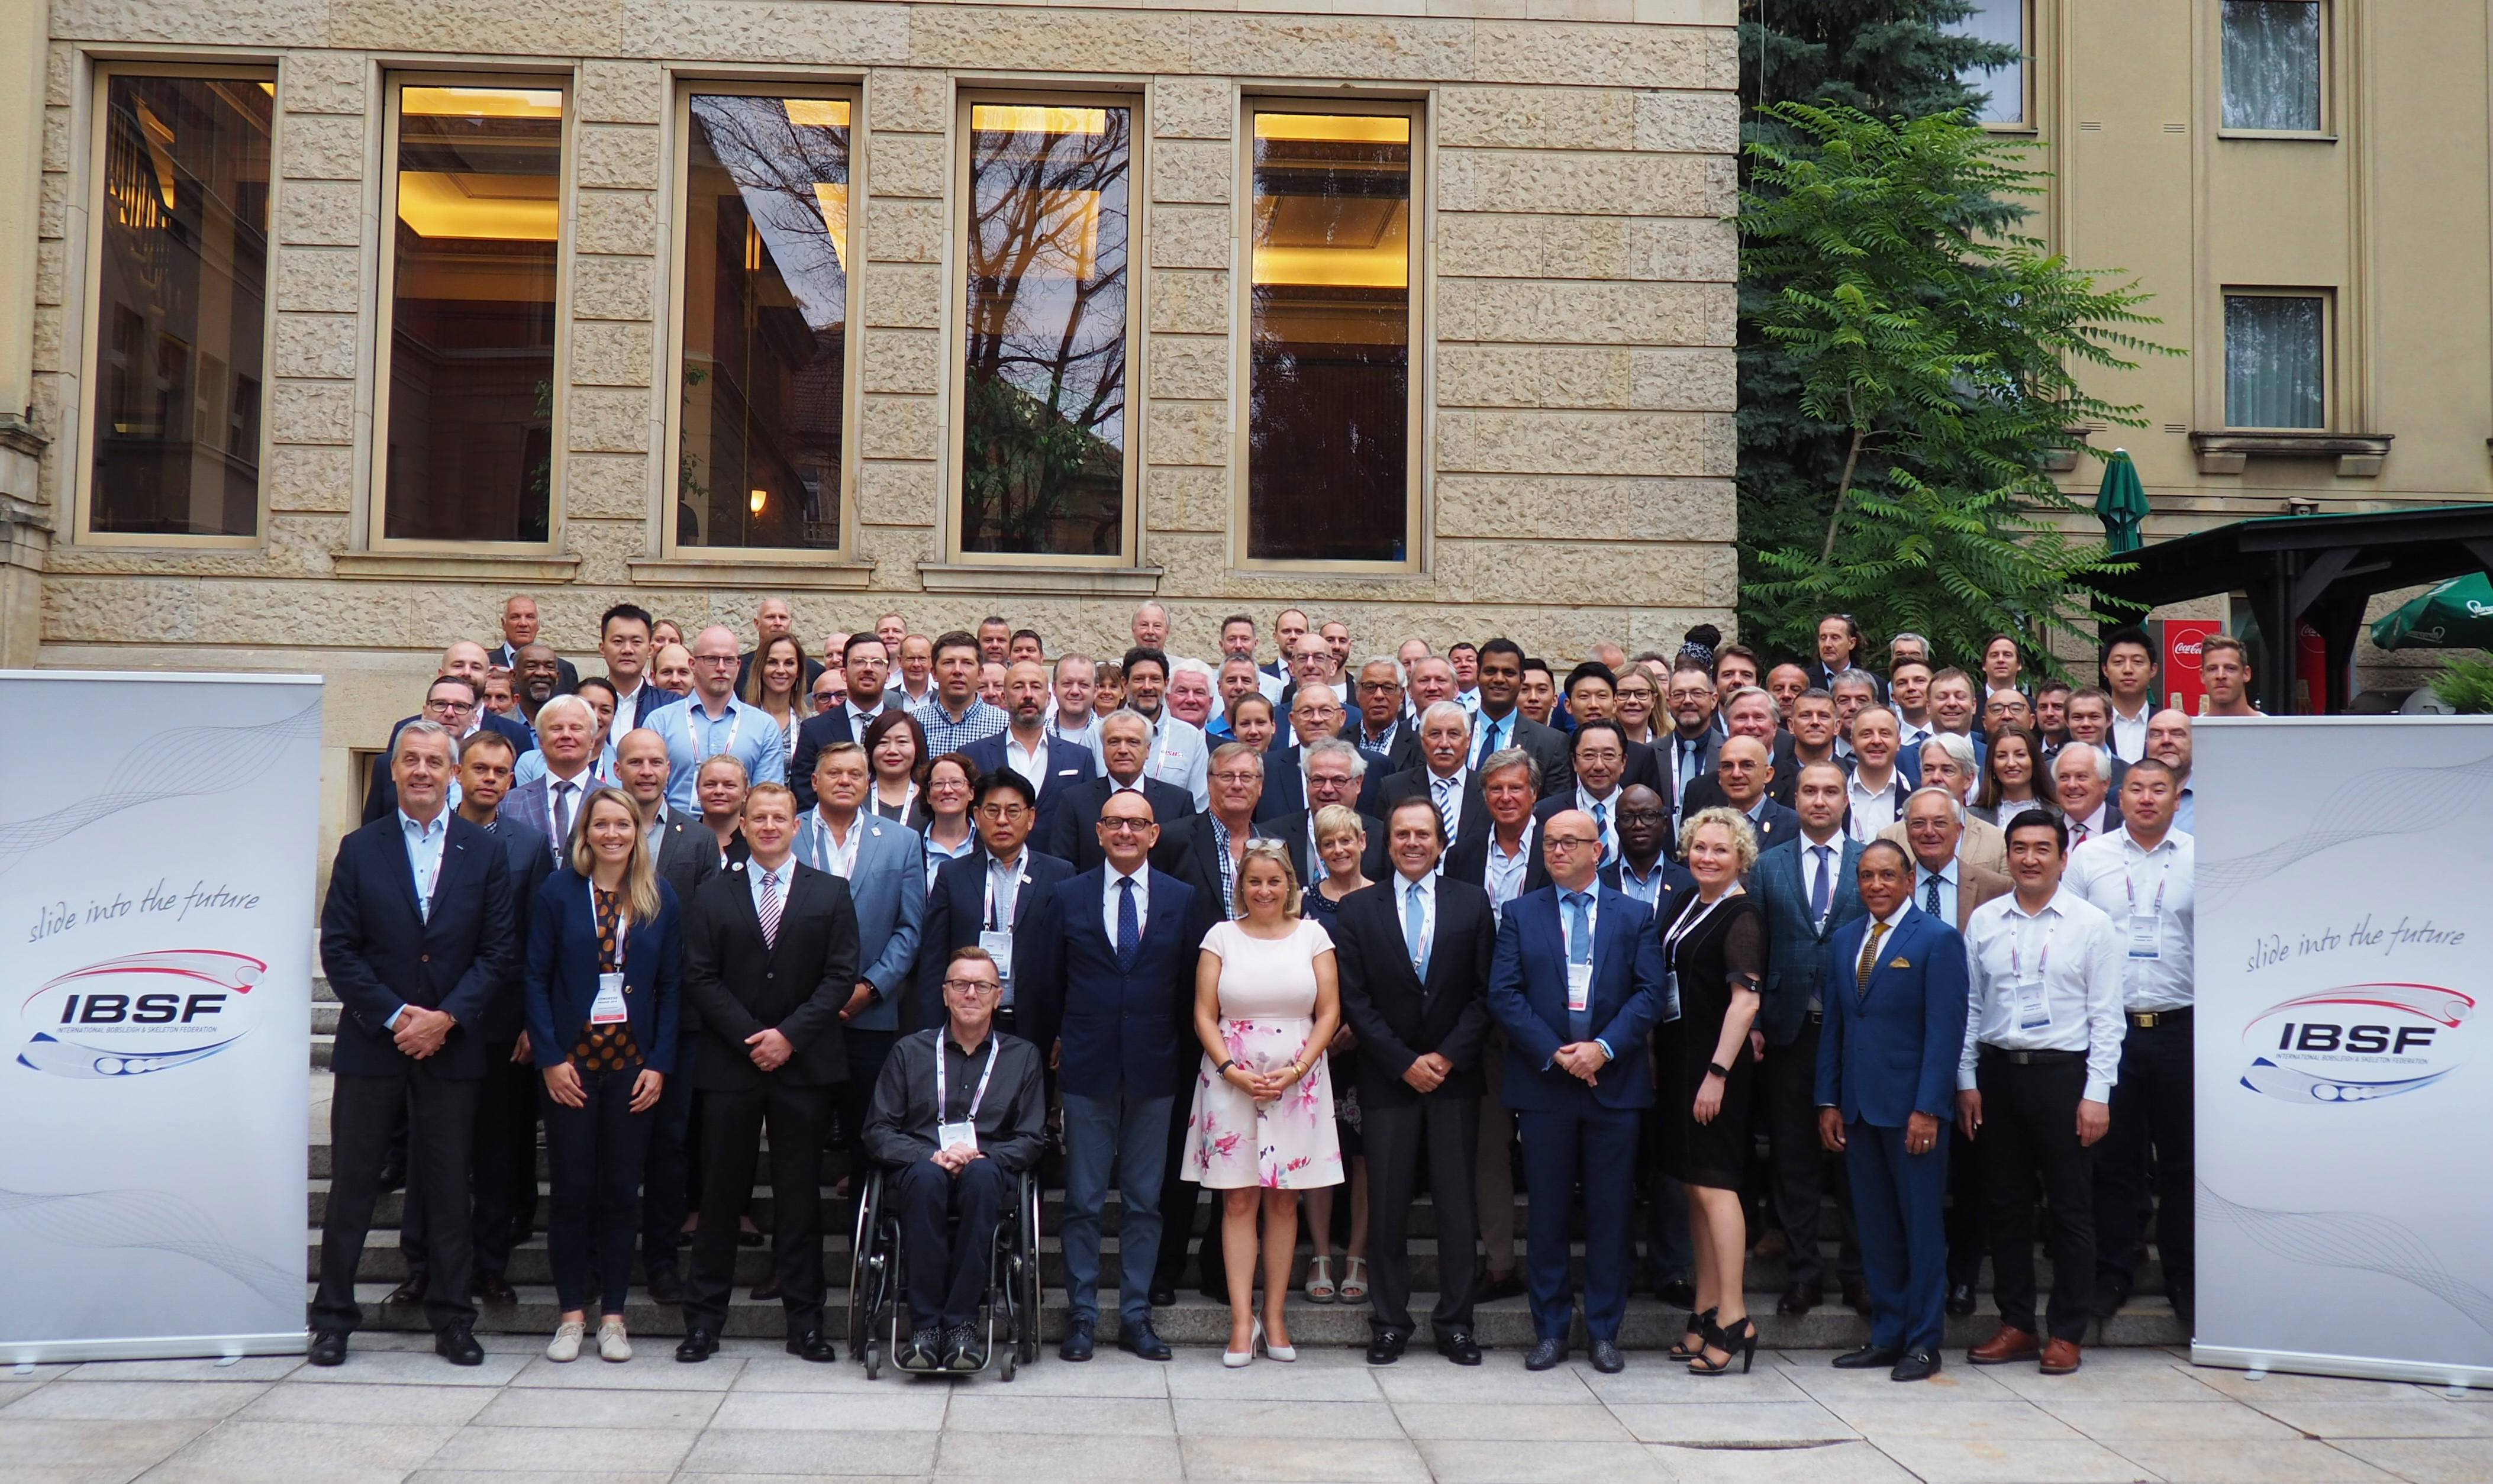 IBSF Congress 2019 in Prague discussing challenges and chances for sliding sports